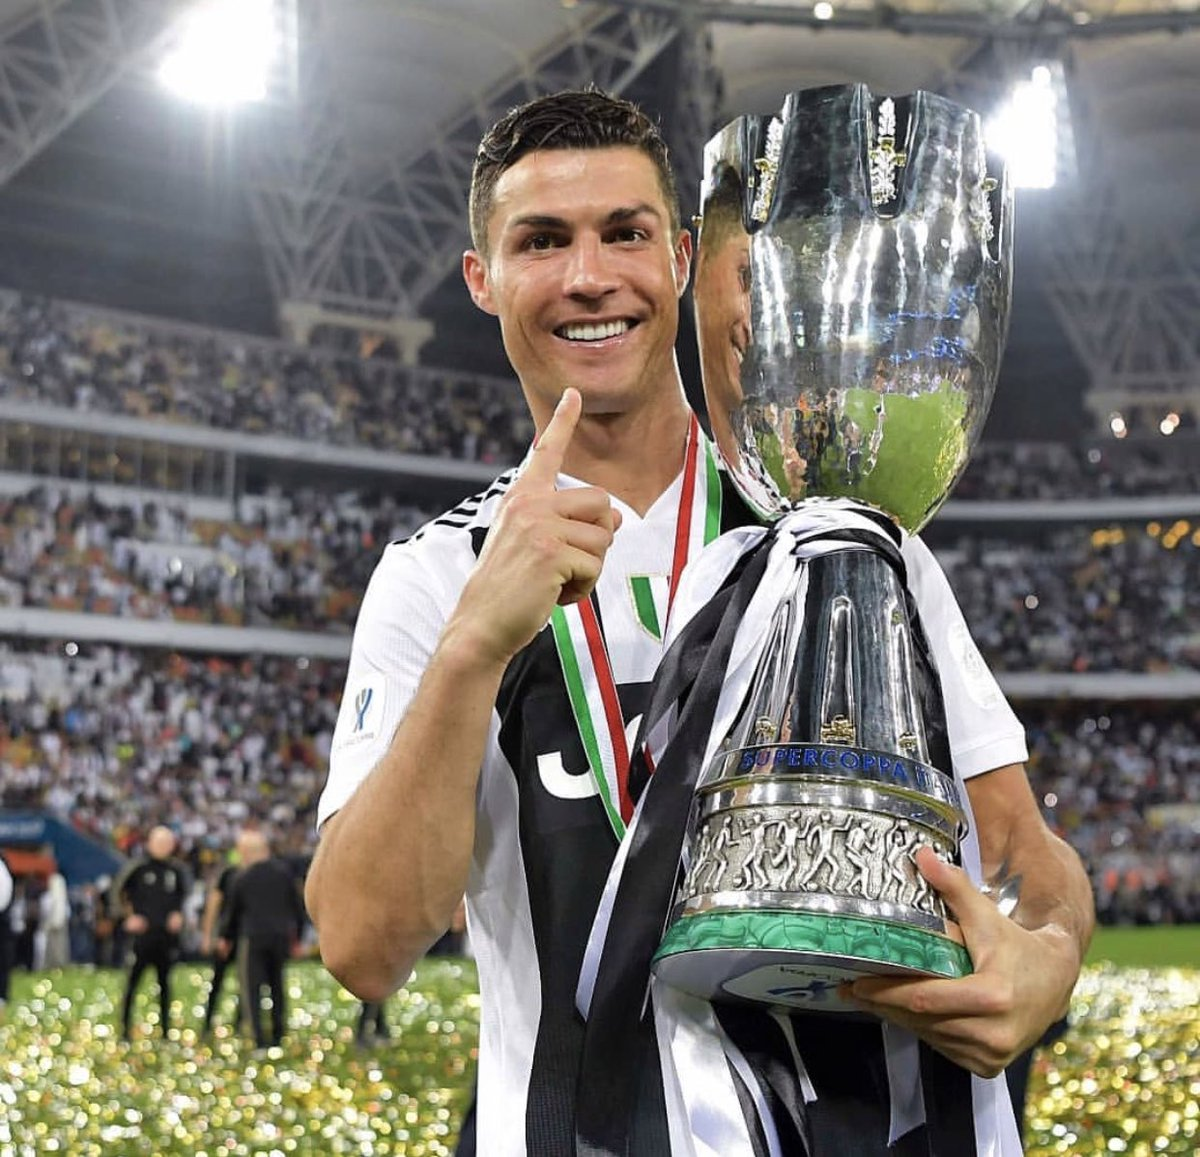 1st trophy of the season for @Cristiano #SuperCoppa #SuperJuve